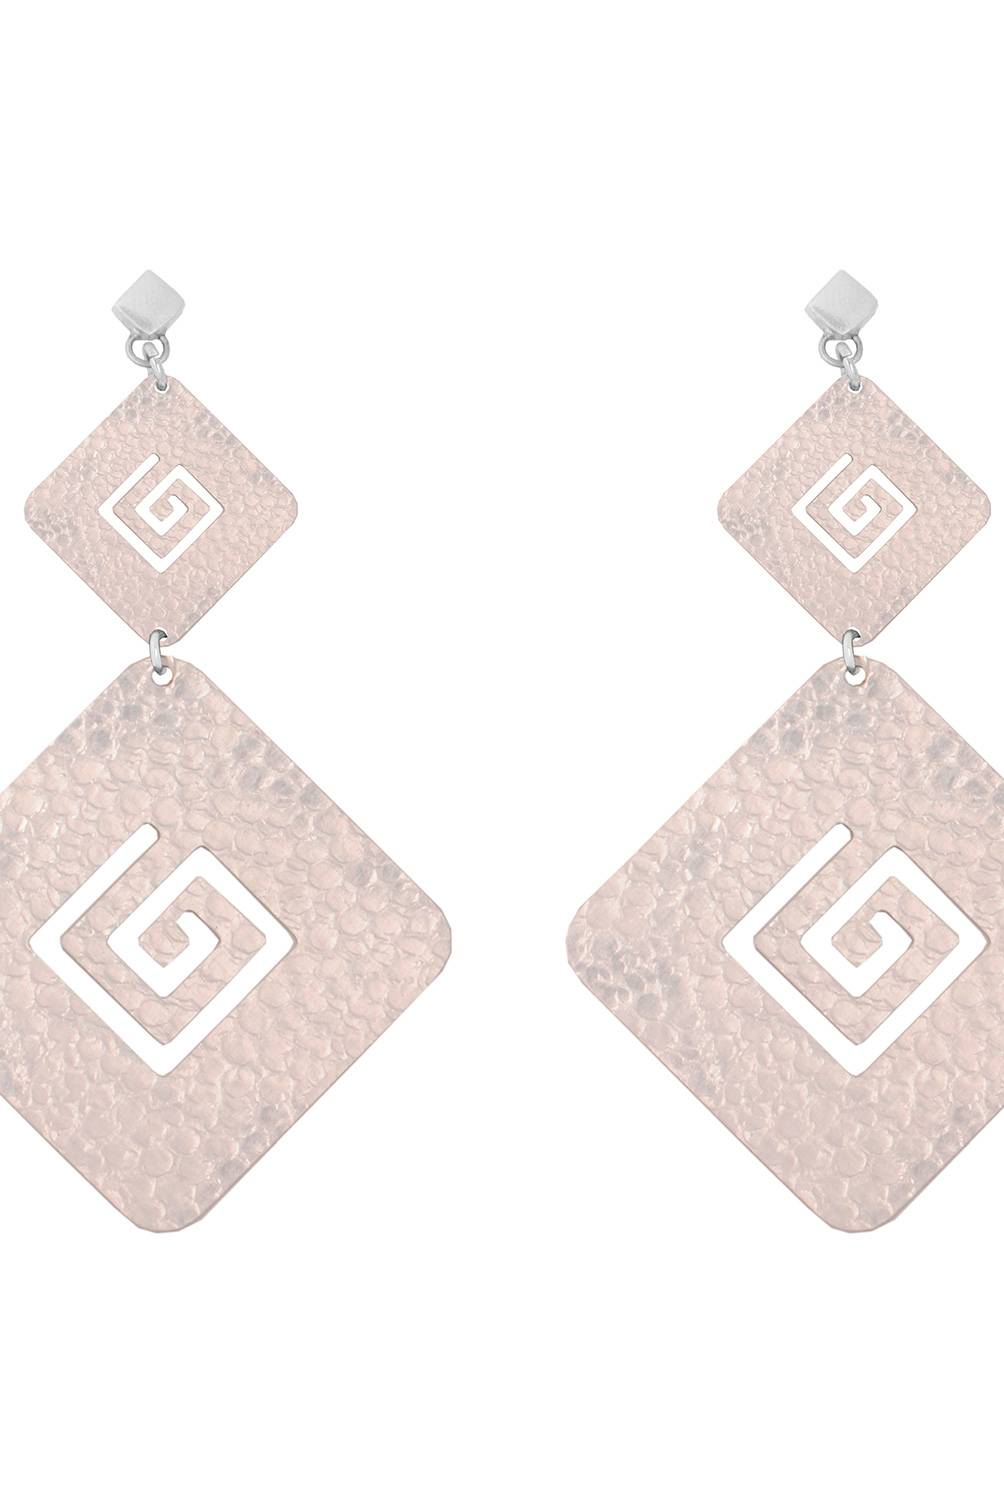 Fussion By Galeón - Aretes FCA006P